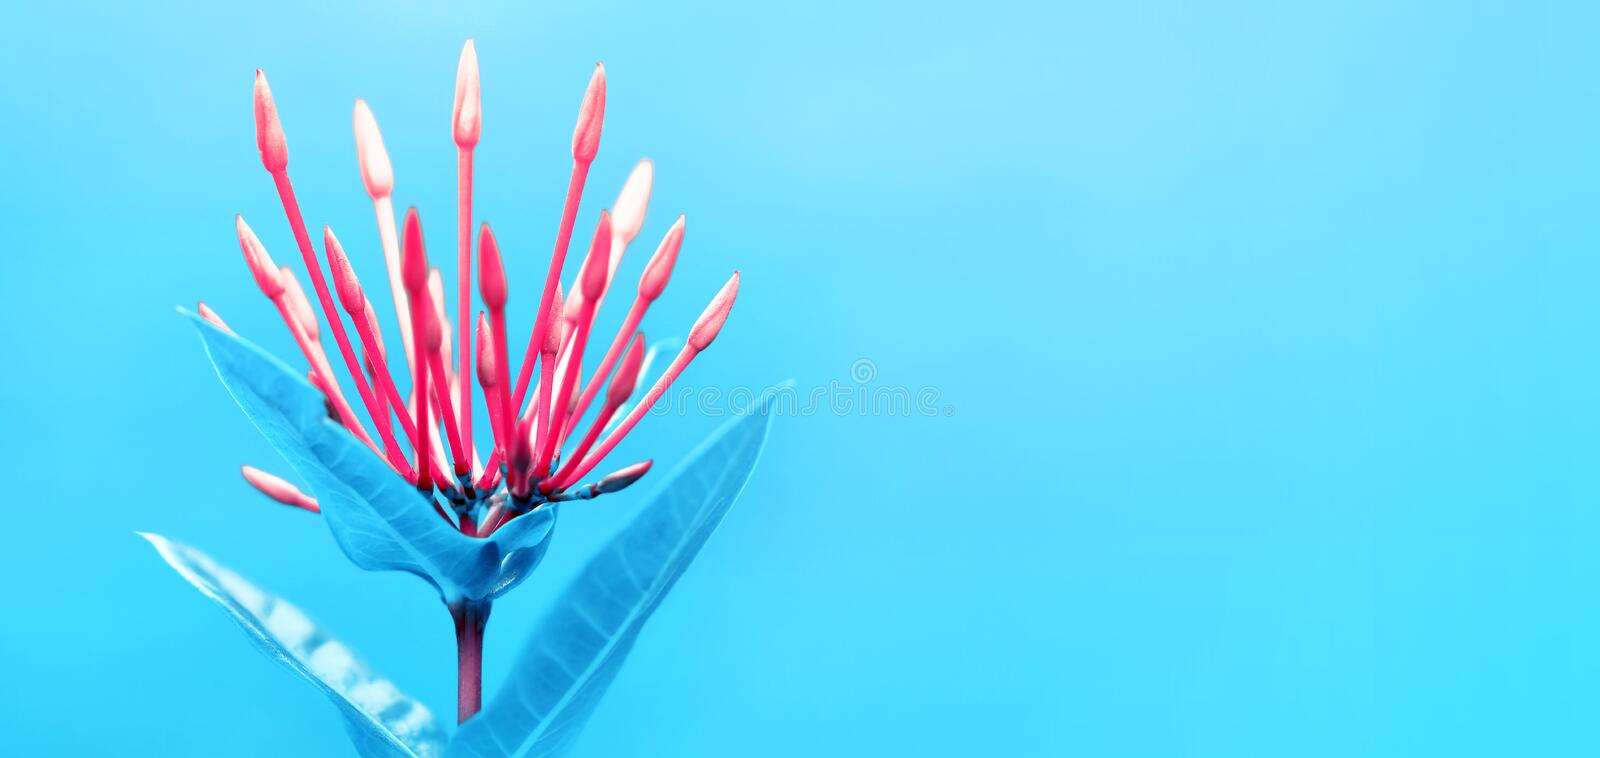 Bright red buds of tropical flowers on a delicate blue background. Summer fresh macro image. royalty free stock image